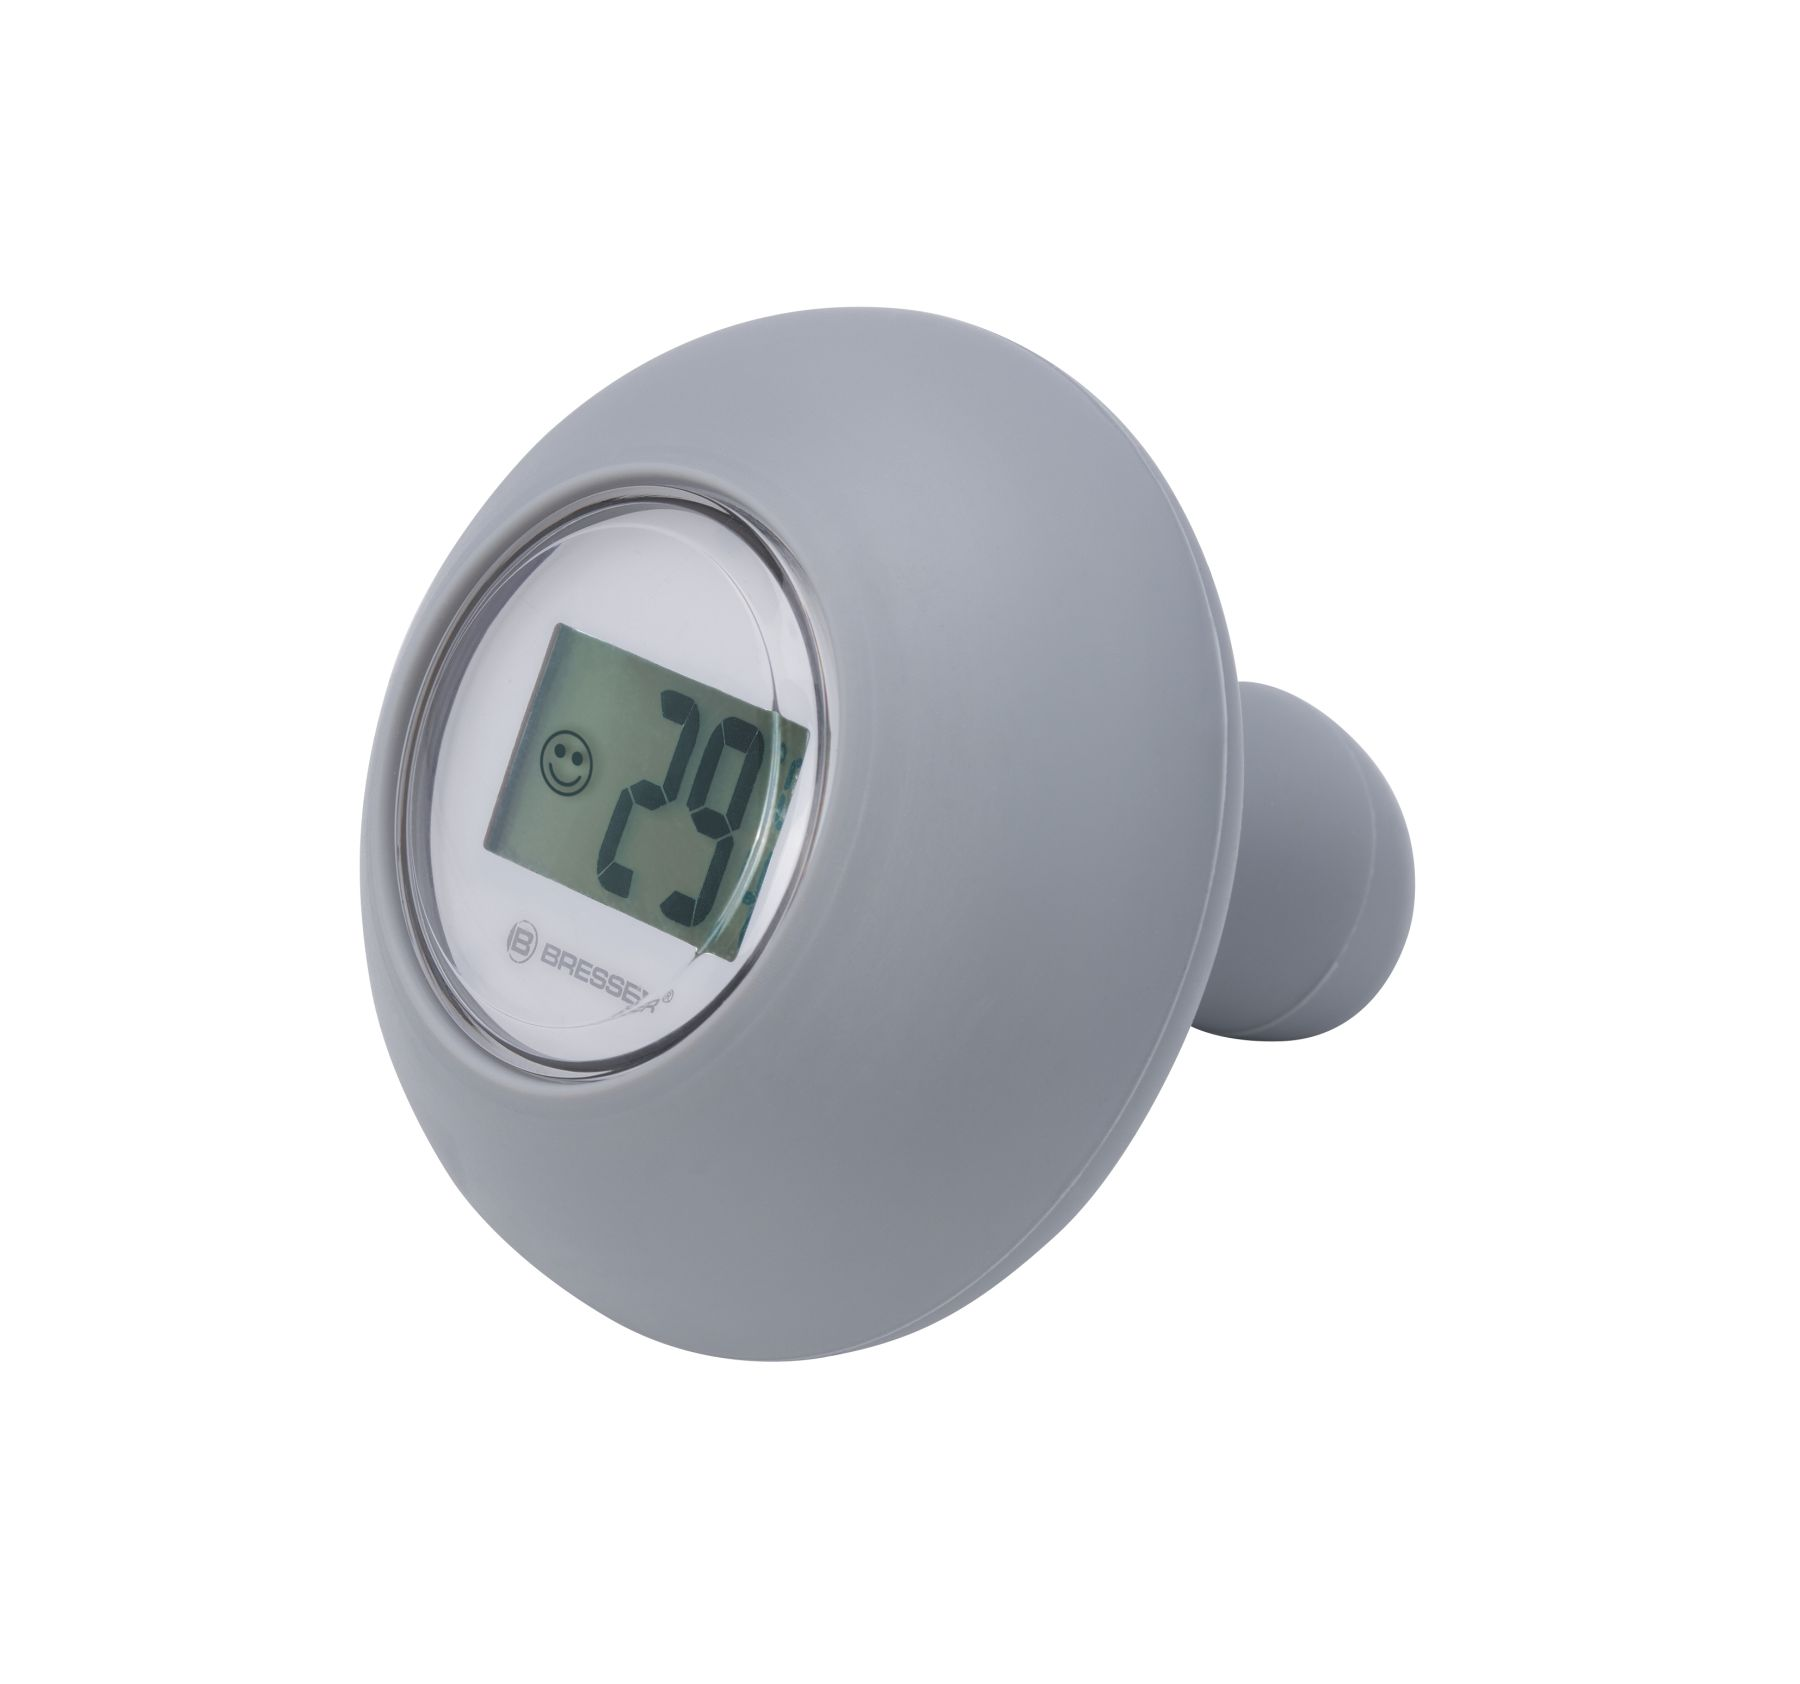 Digital Bathroom Thermometer